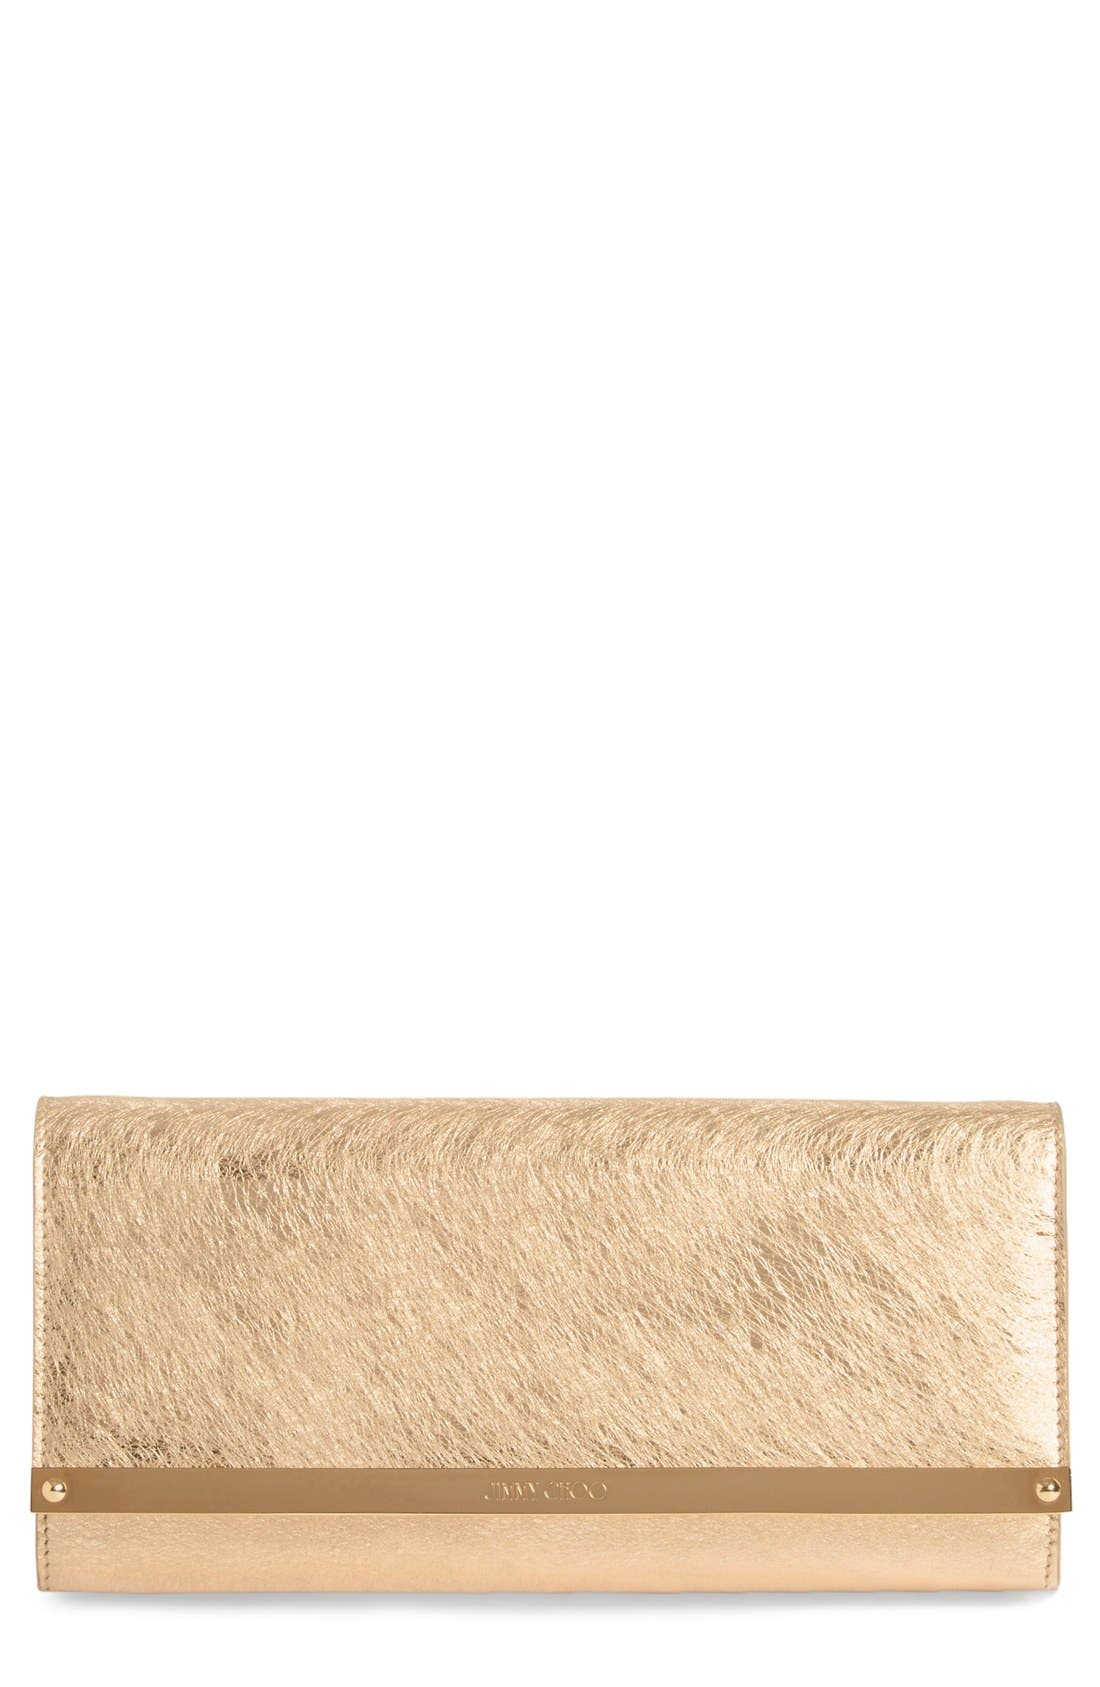 'Milla' Etched Metallic Spazzolato Leather Flap Clutch,                         Main,                         color, Gold